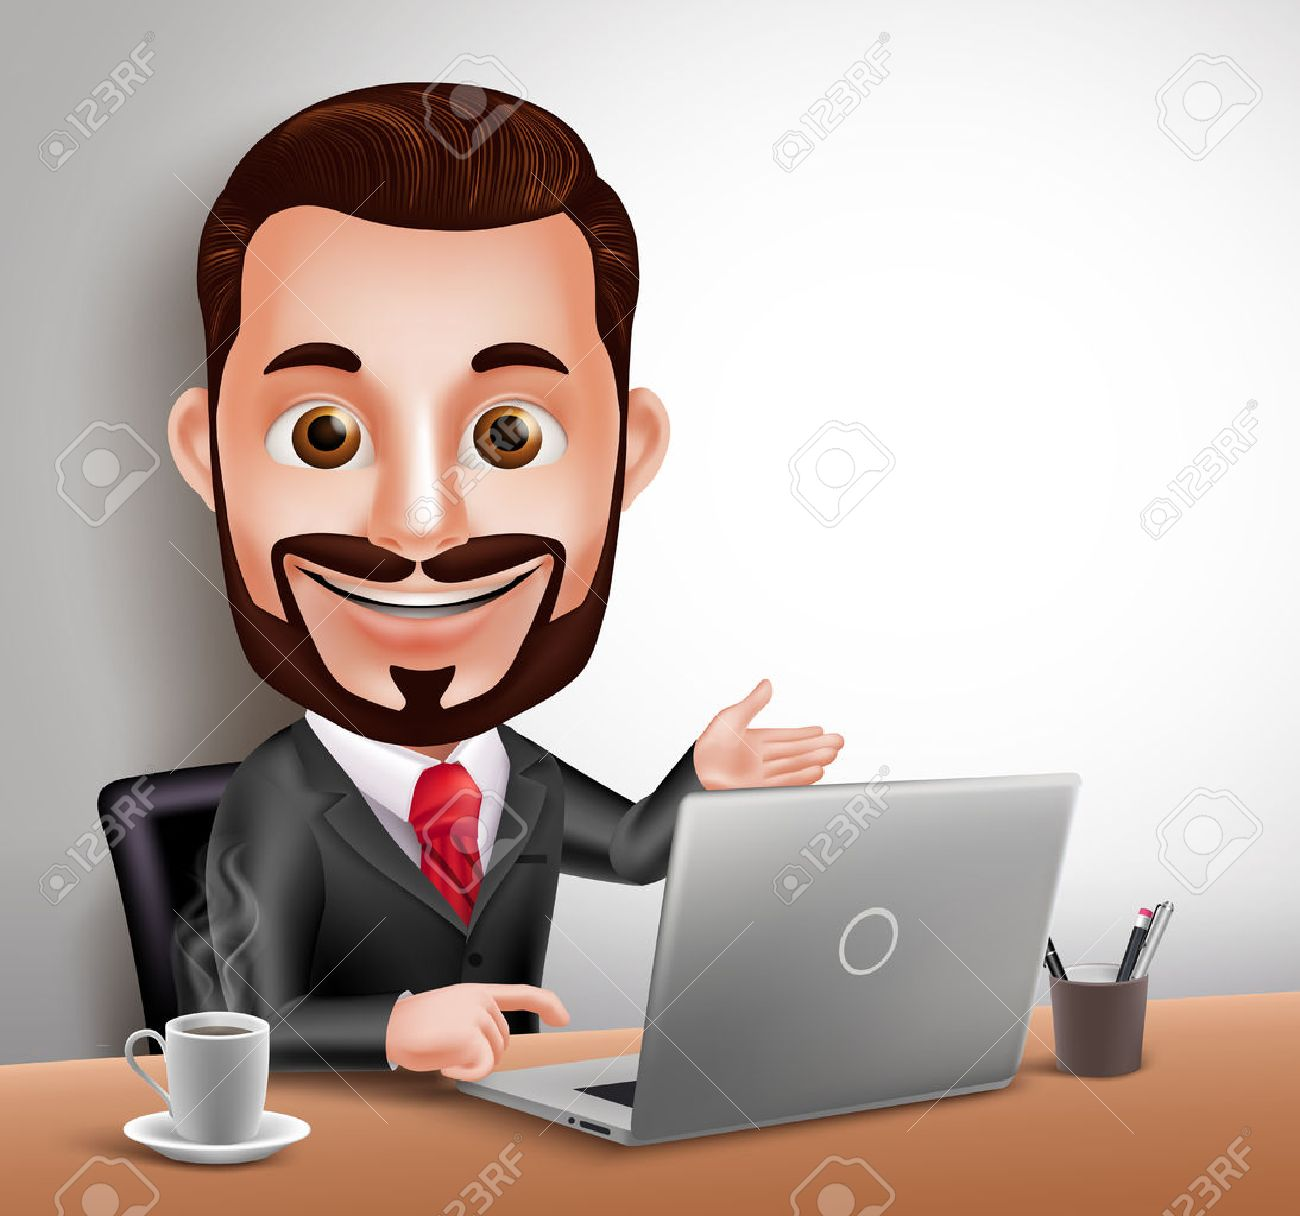 3D Realistic Professional Business Man Vector Character Happy Sitting and Working in Office Desk with Laptop Computer. Vector Illustration - 49826490